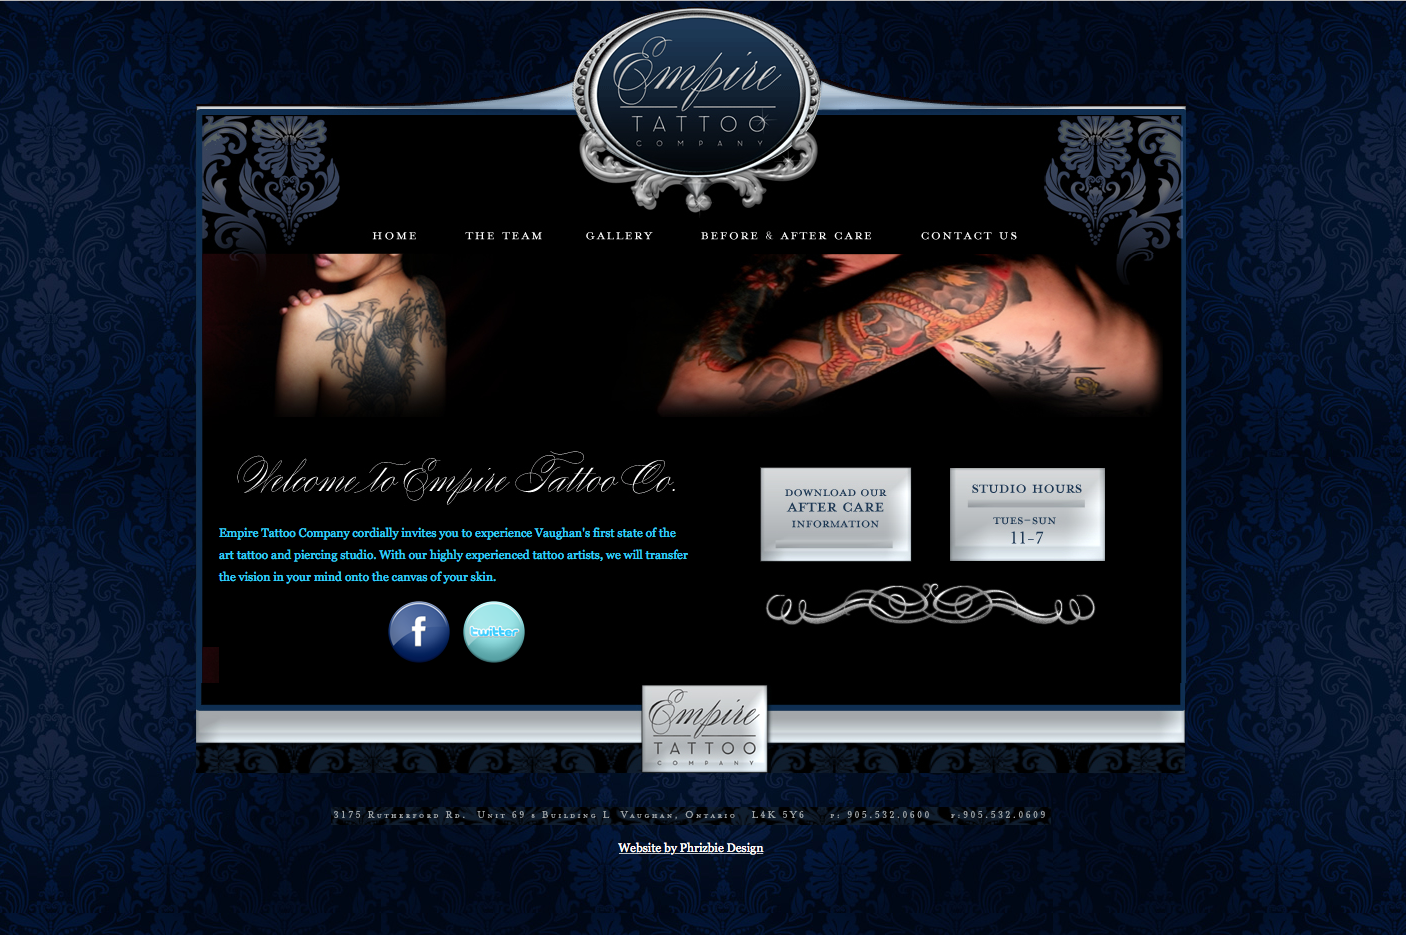 Empire Tattoo Website Design